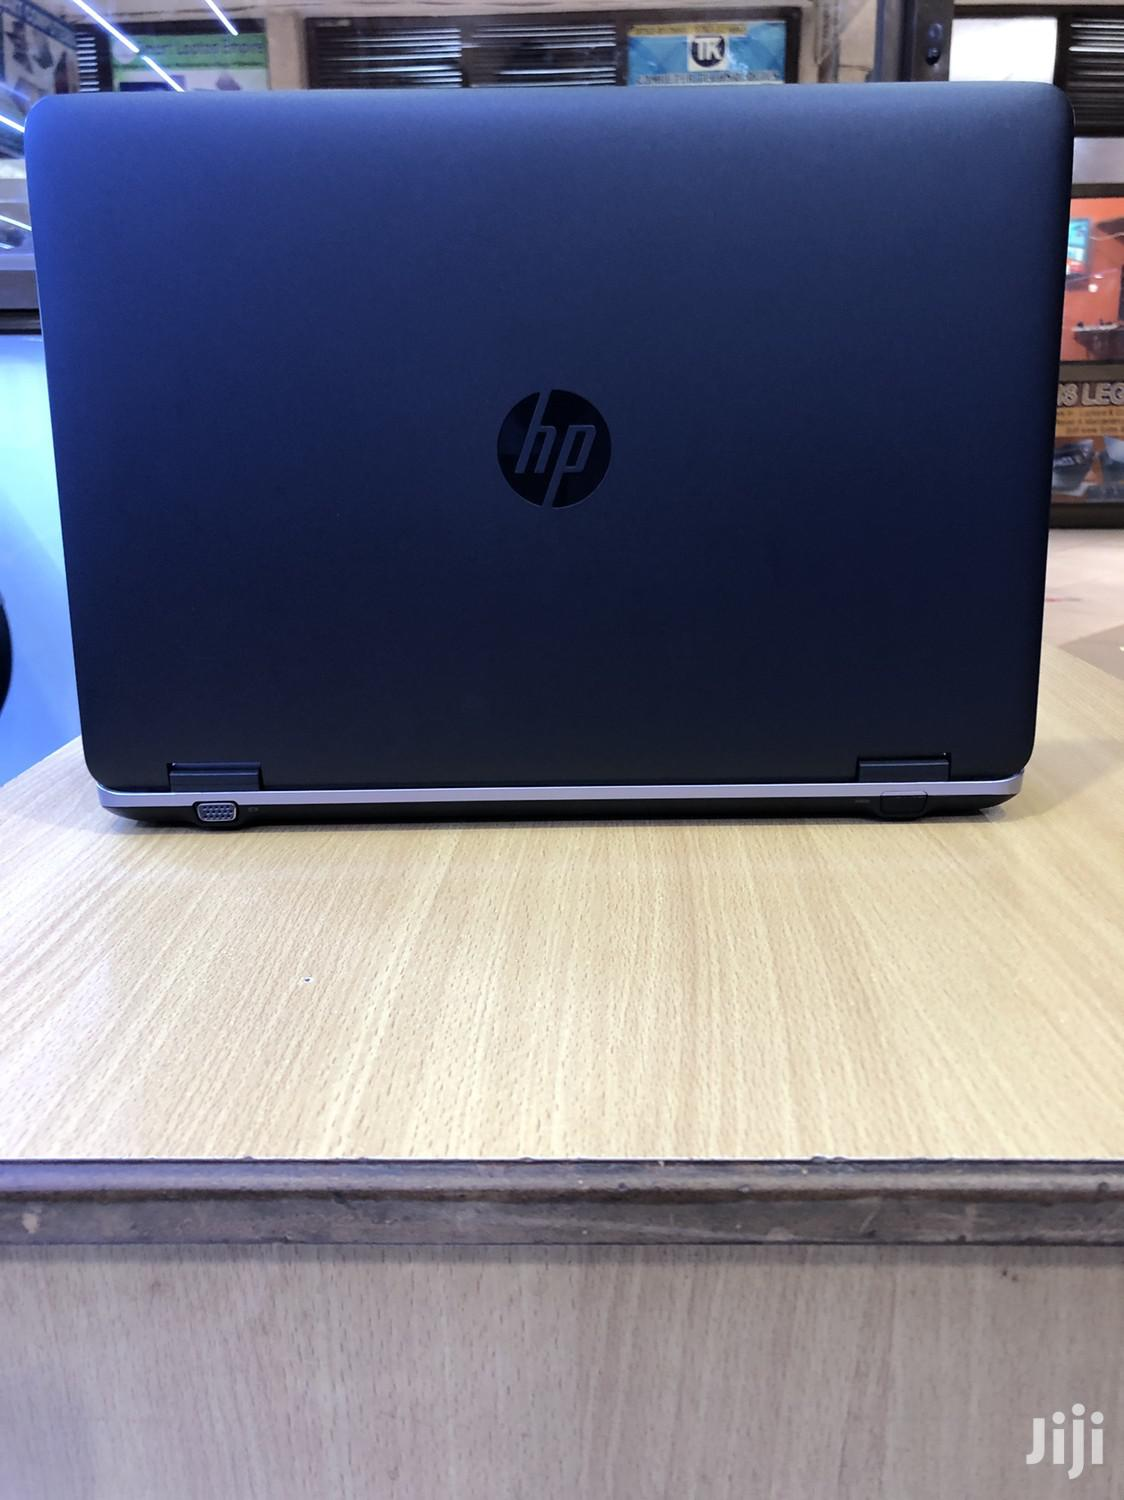 HP 840 Elitebook 14 Inches 500Gb Hdd Core I5 4Gb Ram   Laptops & Computers for sale in Kampala, Central Region, Uganda